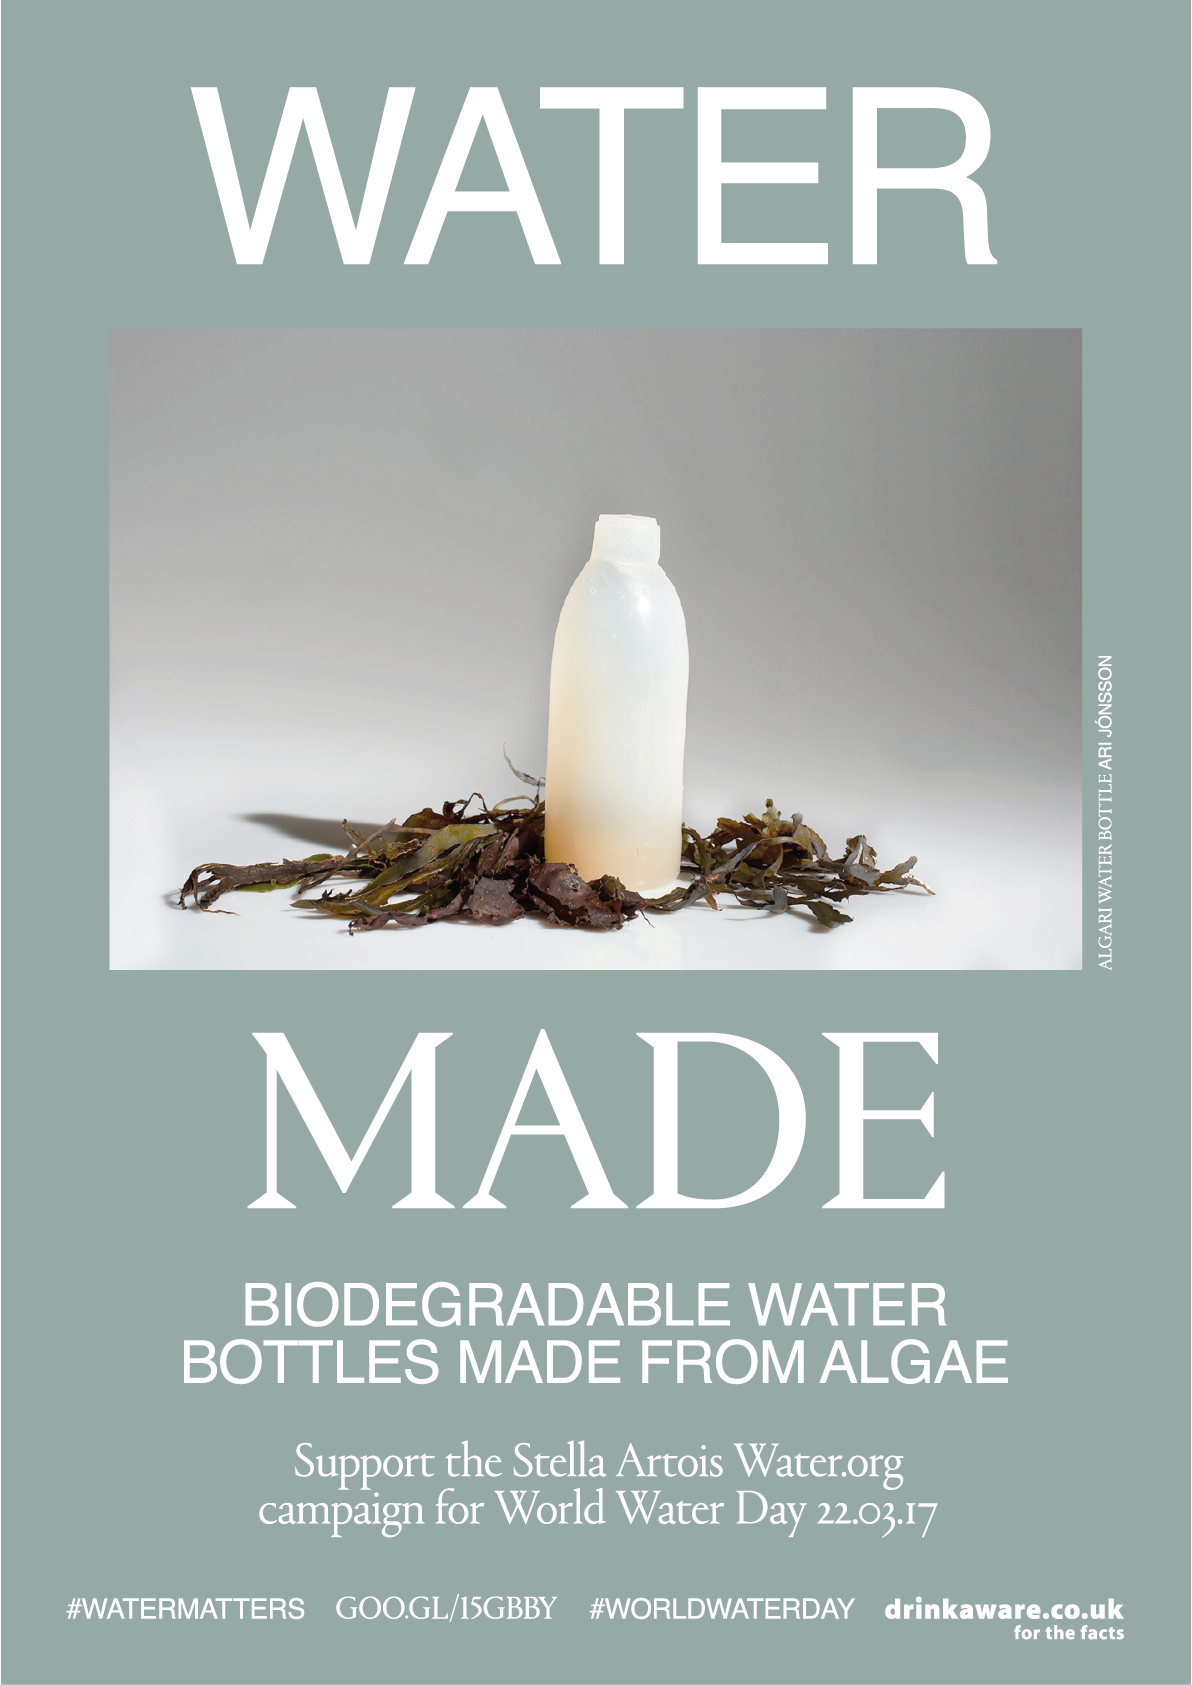 WATER MADE, MATTER   Packaging is so connected to water based processes.  Ari Jónsson  has created a biodegradeable water bottle made from algae which is grown in water. This could potentially replace the need for the damaging plastic water bottles which take hundreds of years to degrade.